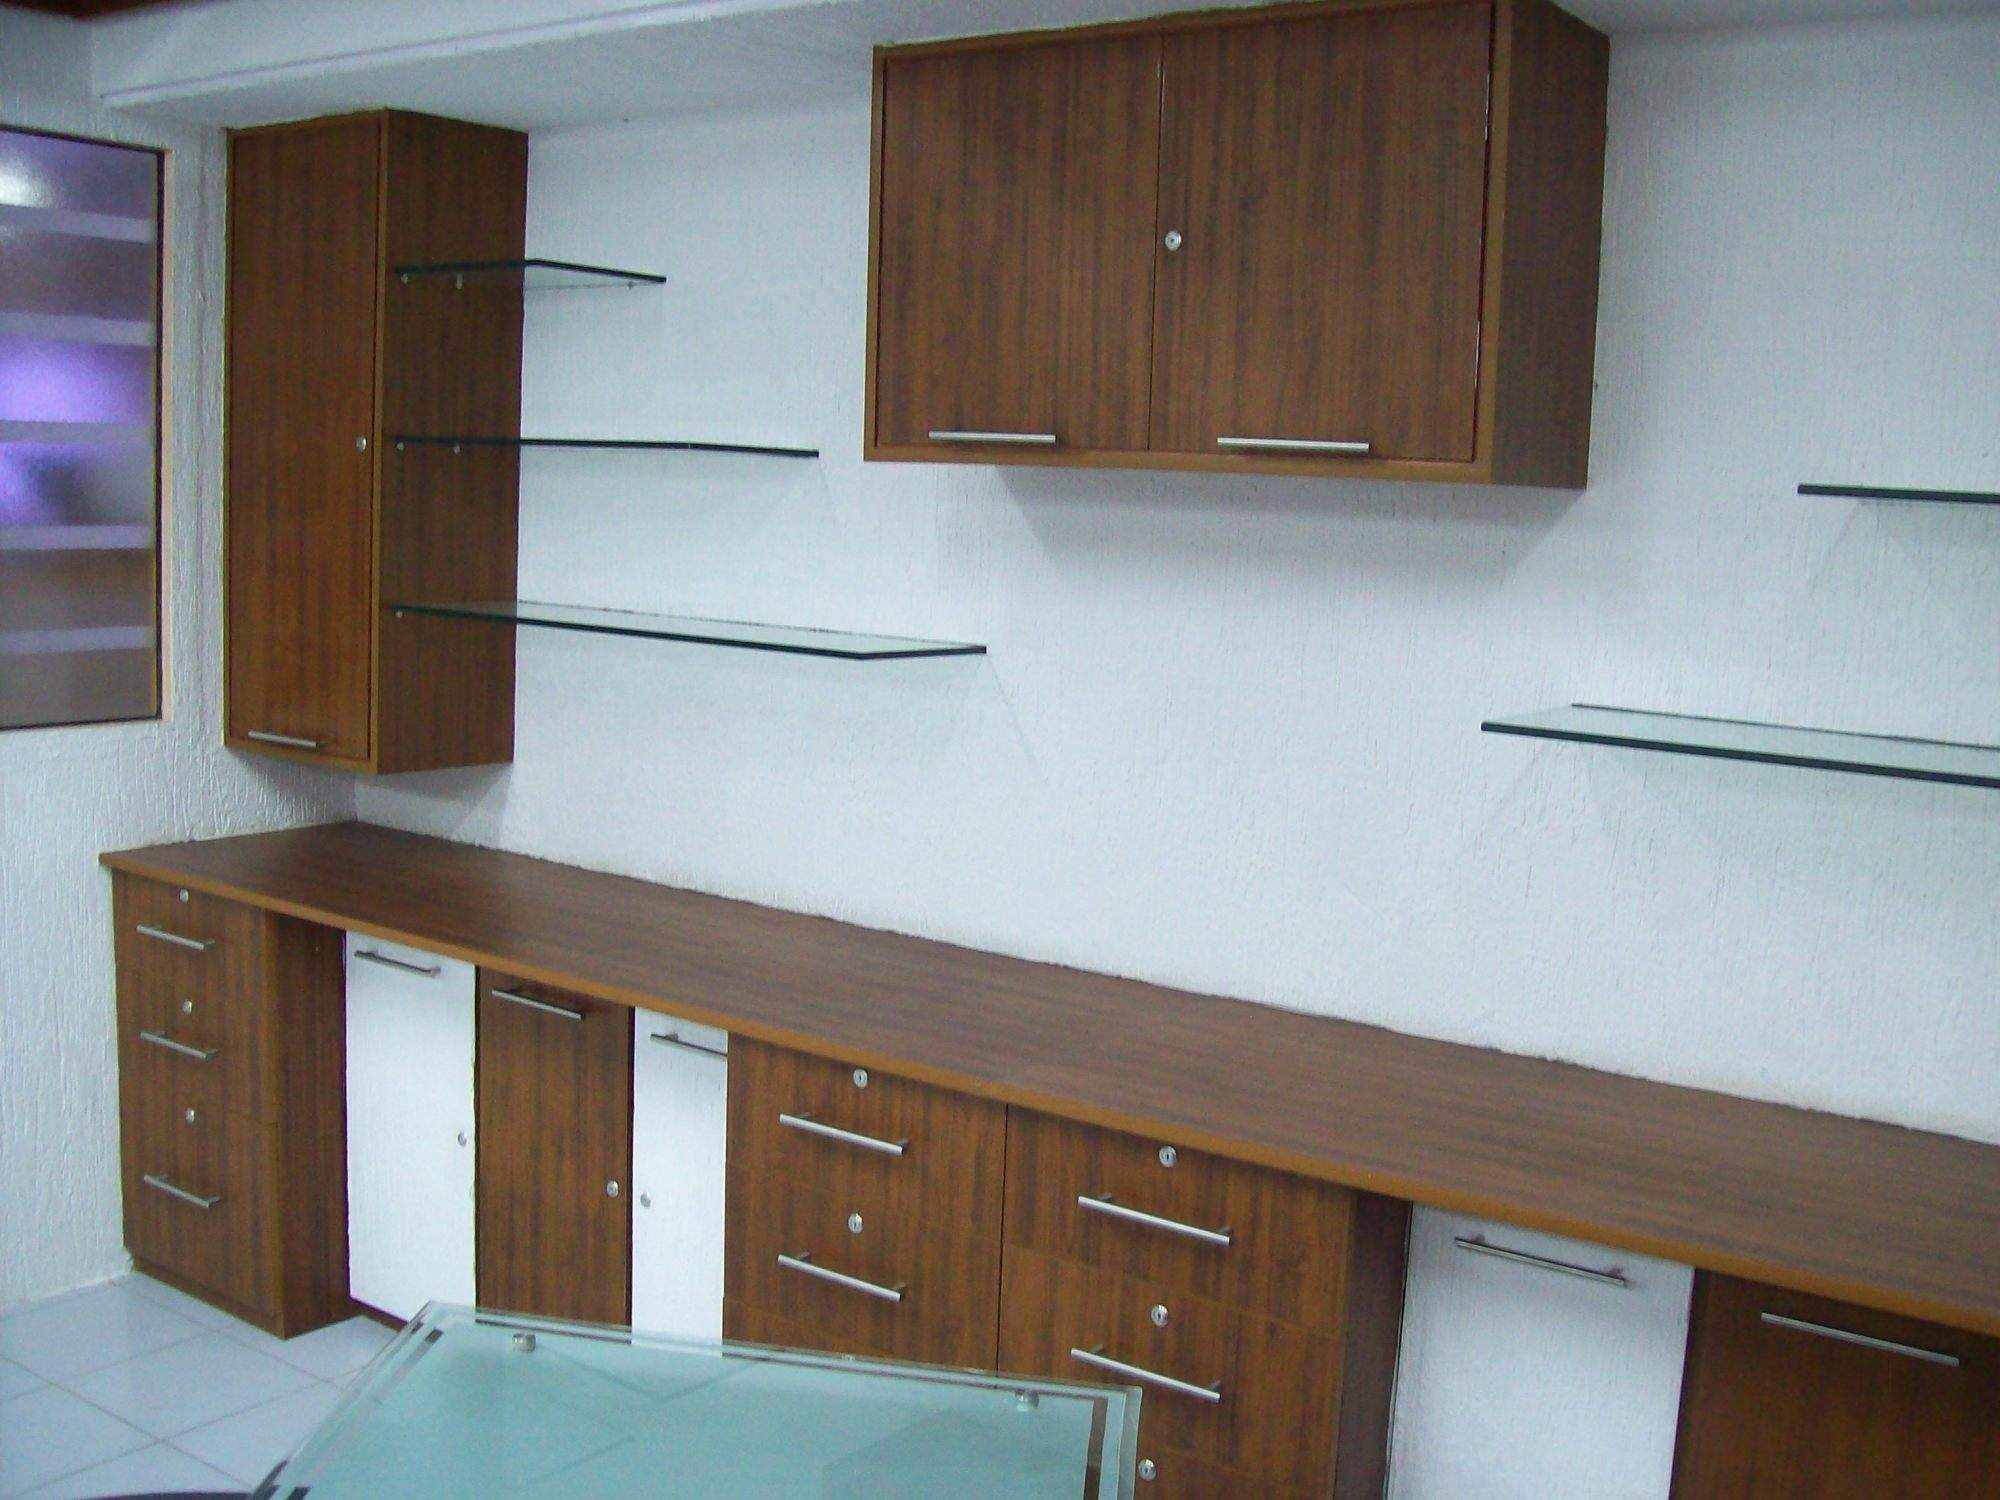 Top 100 Kitchen Cabinet Manufacturers in Bangalore - Justdial